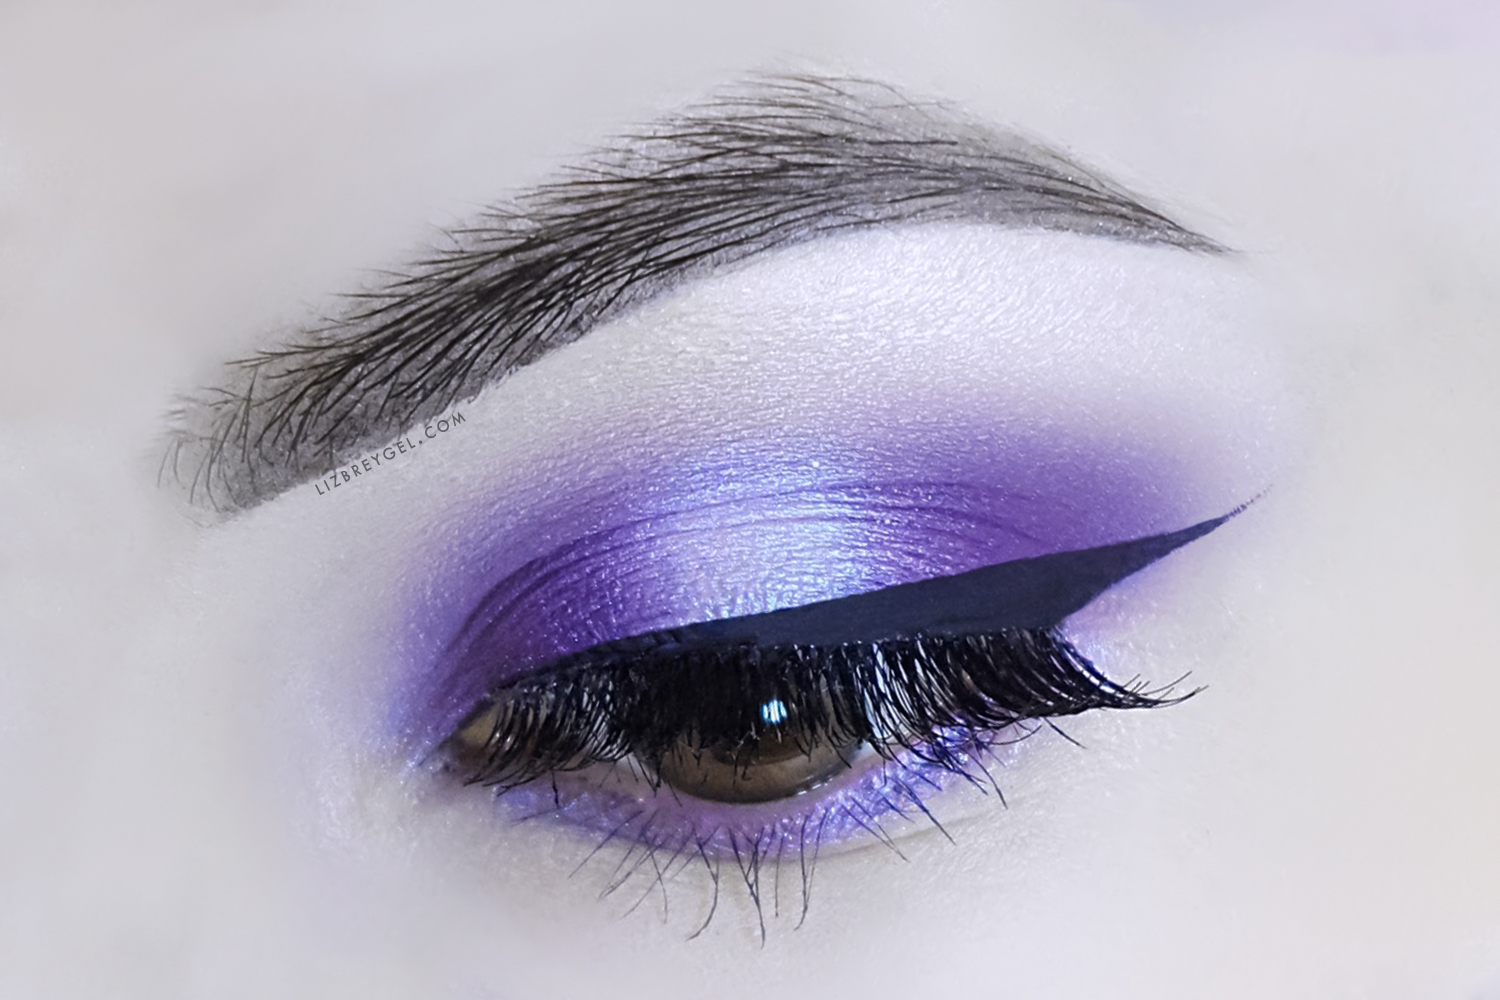 a clos eup picture of an eye with a beautiful smokey eye look